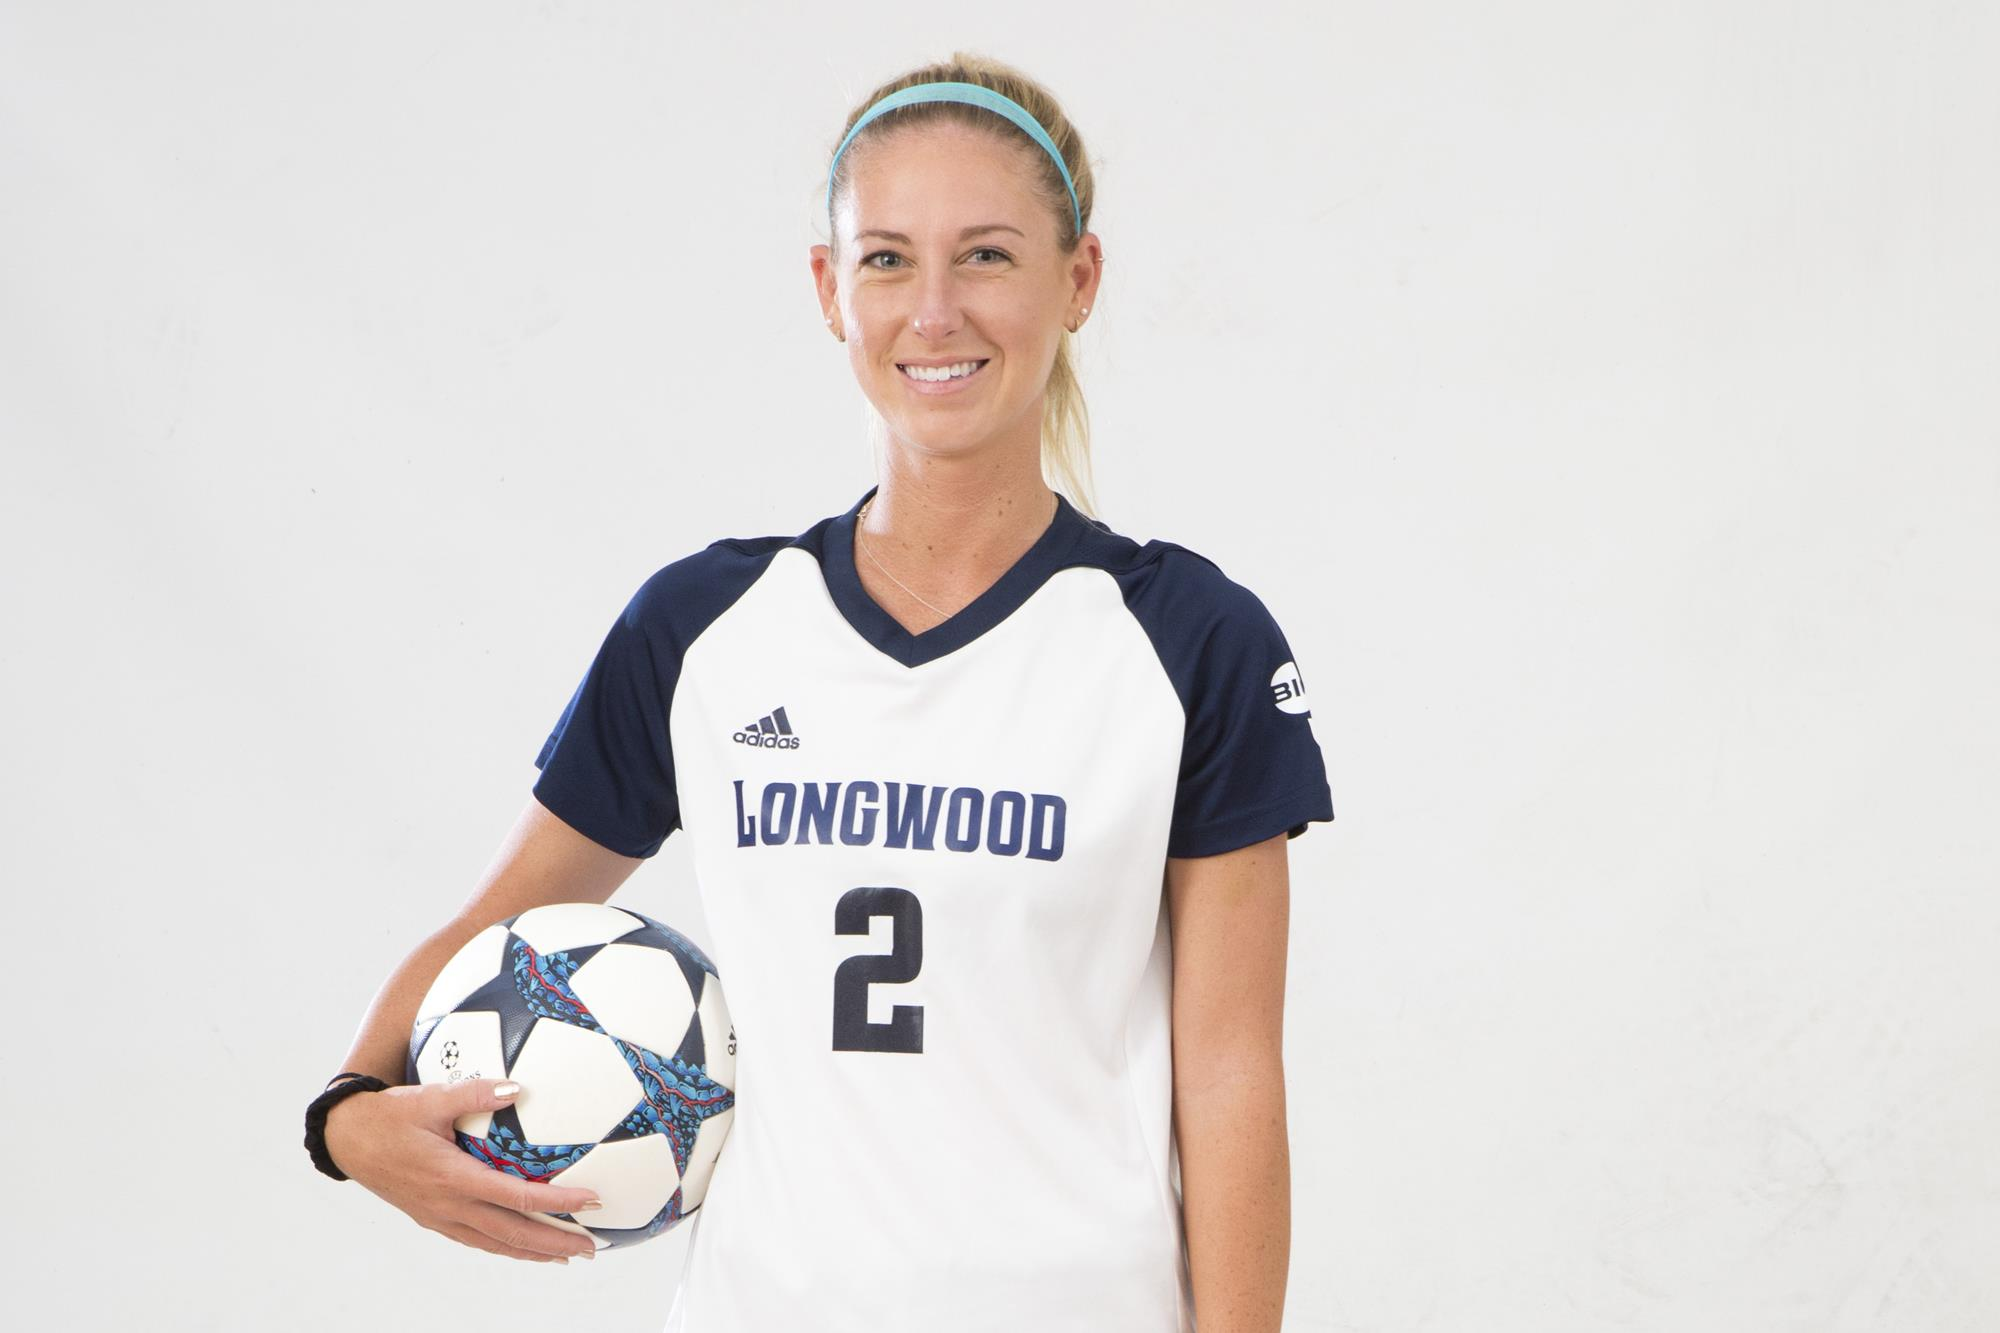 longwood women Page for longwood women's soccer program, including standings, roster and  stats.